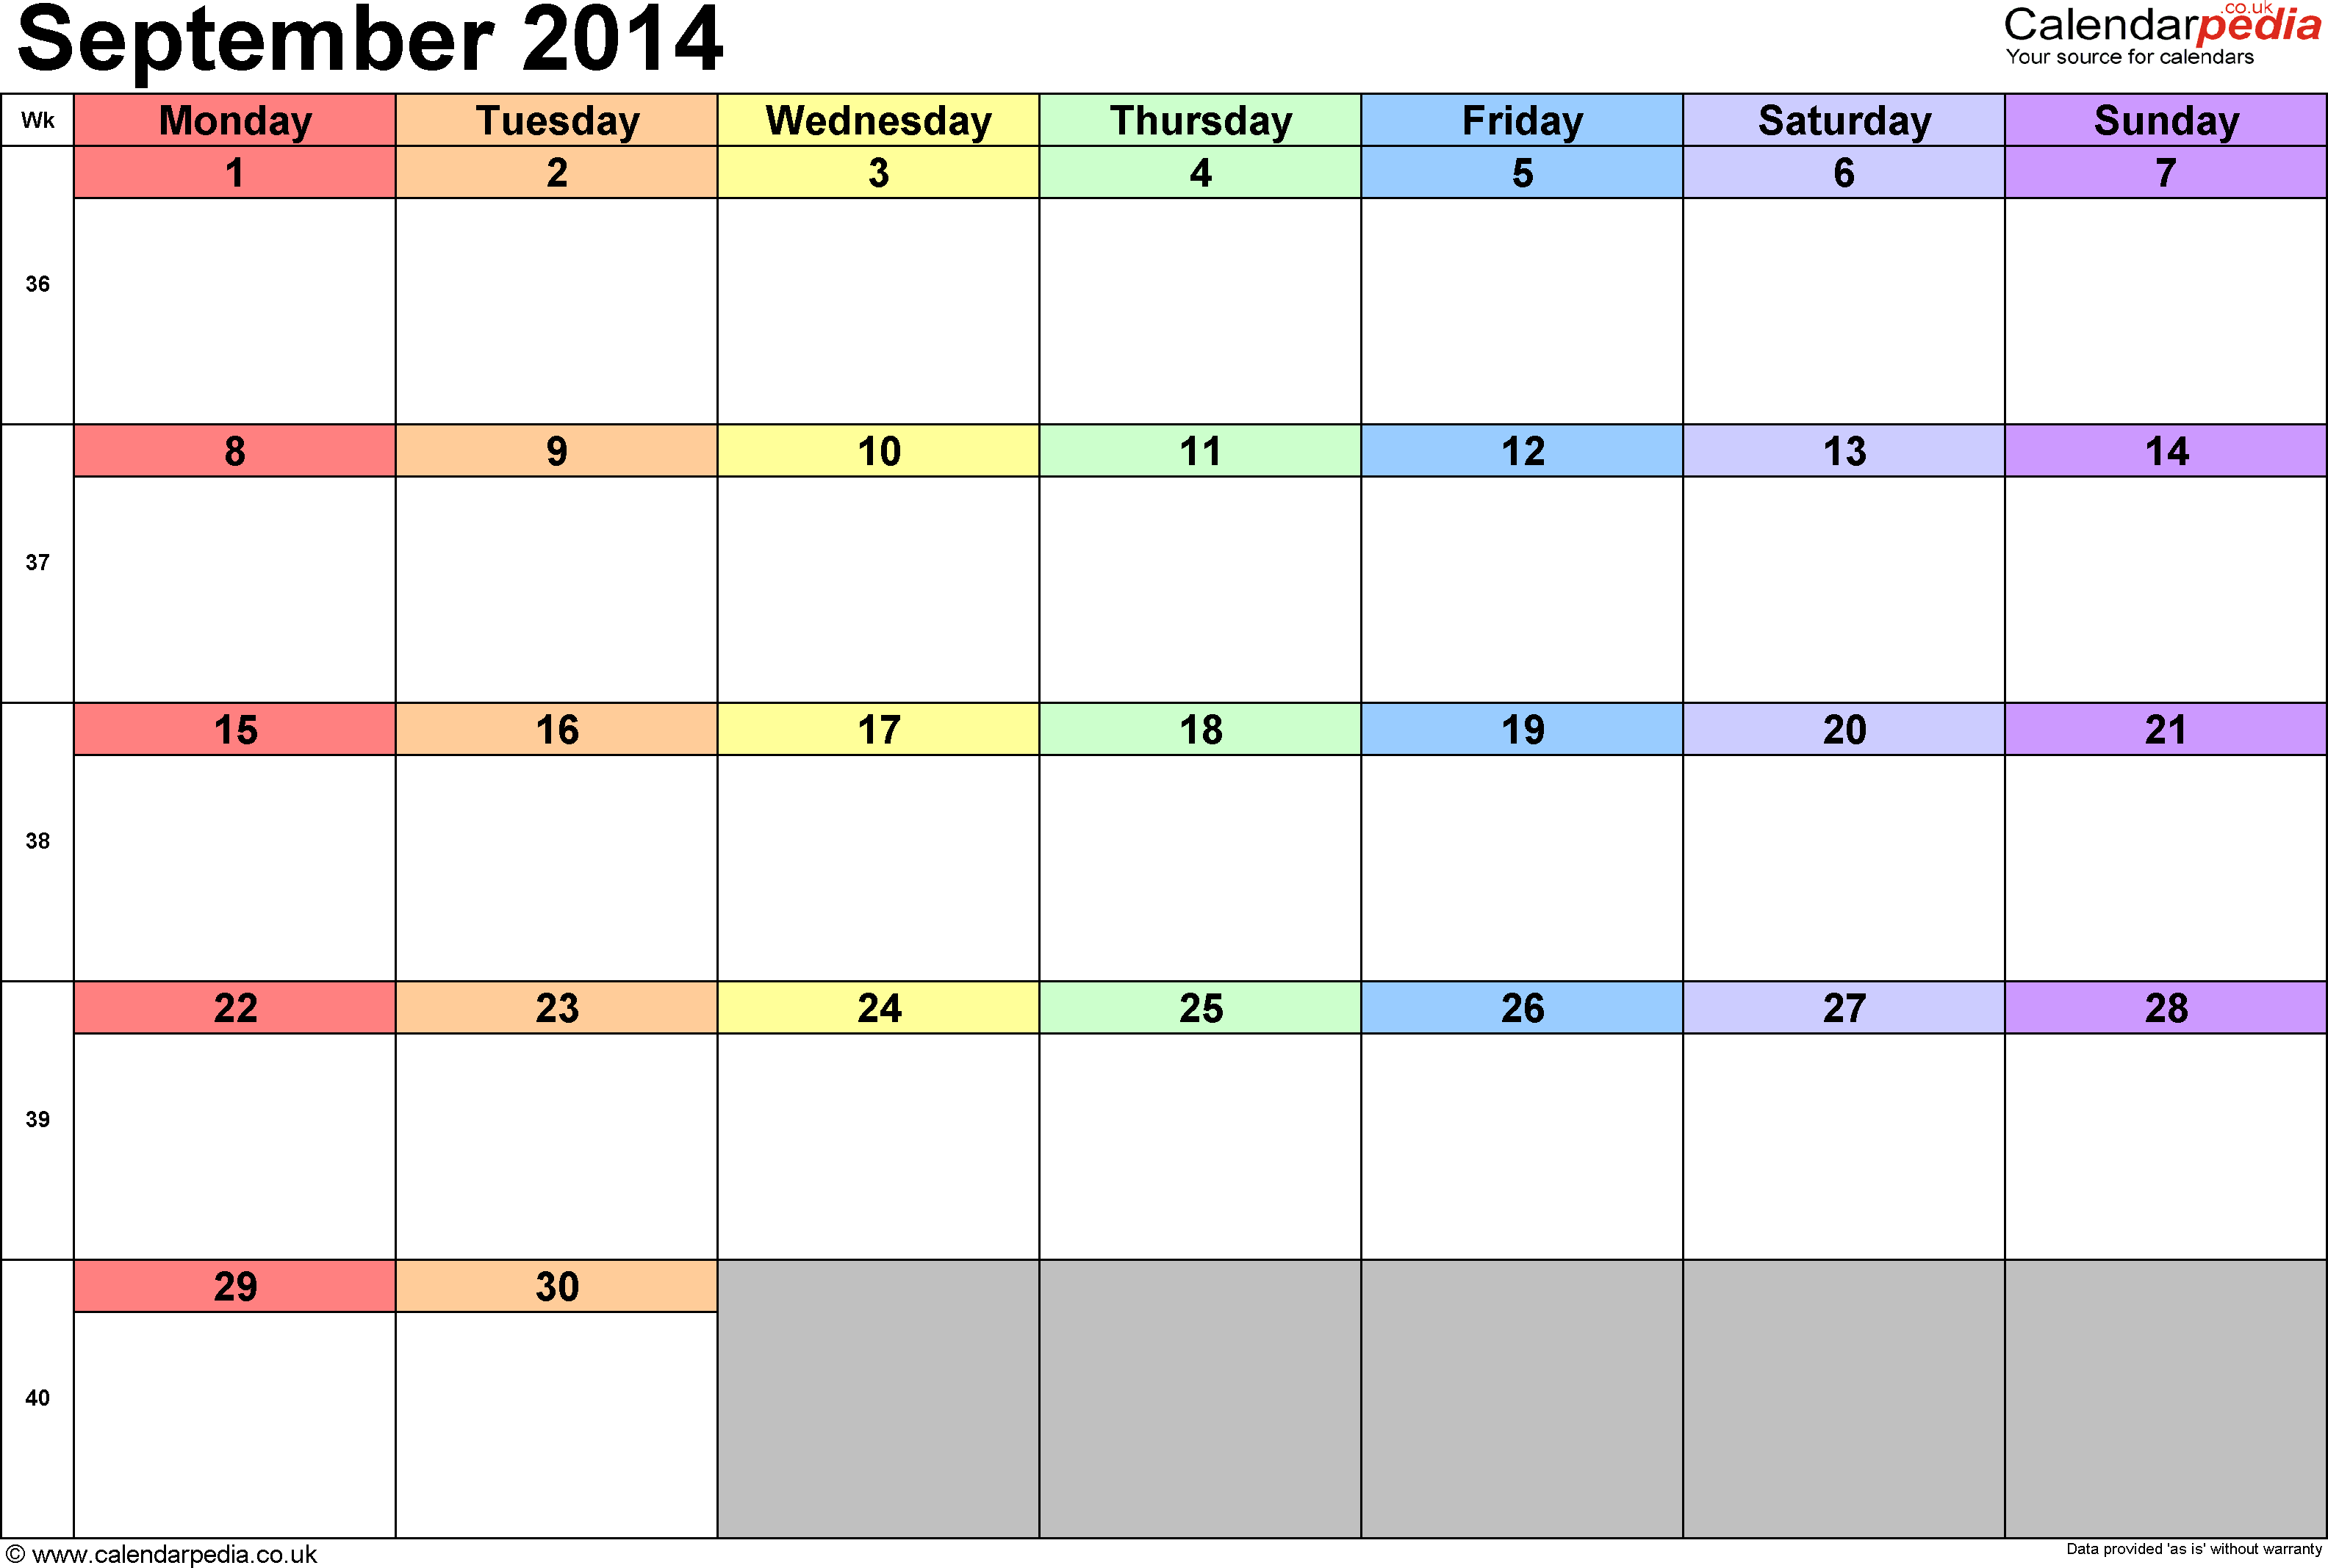 Calendar September 2014, landscape orientation, 1 page, with UK bank holidays and week numbers